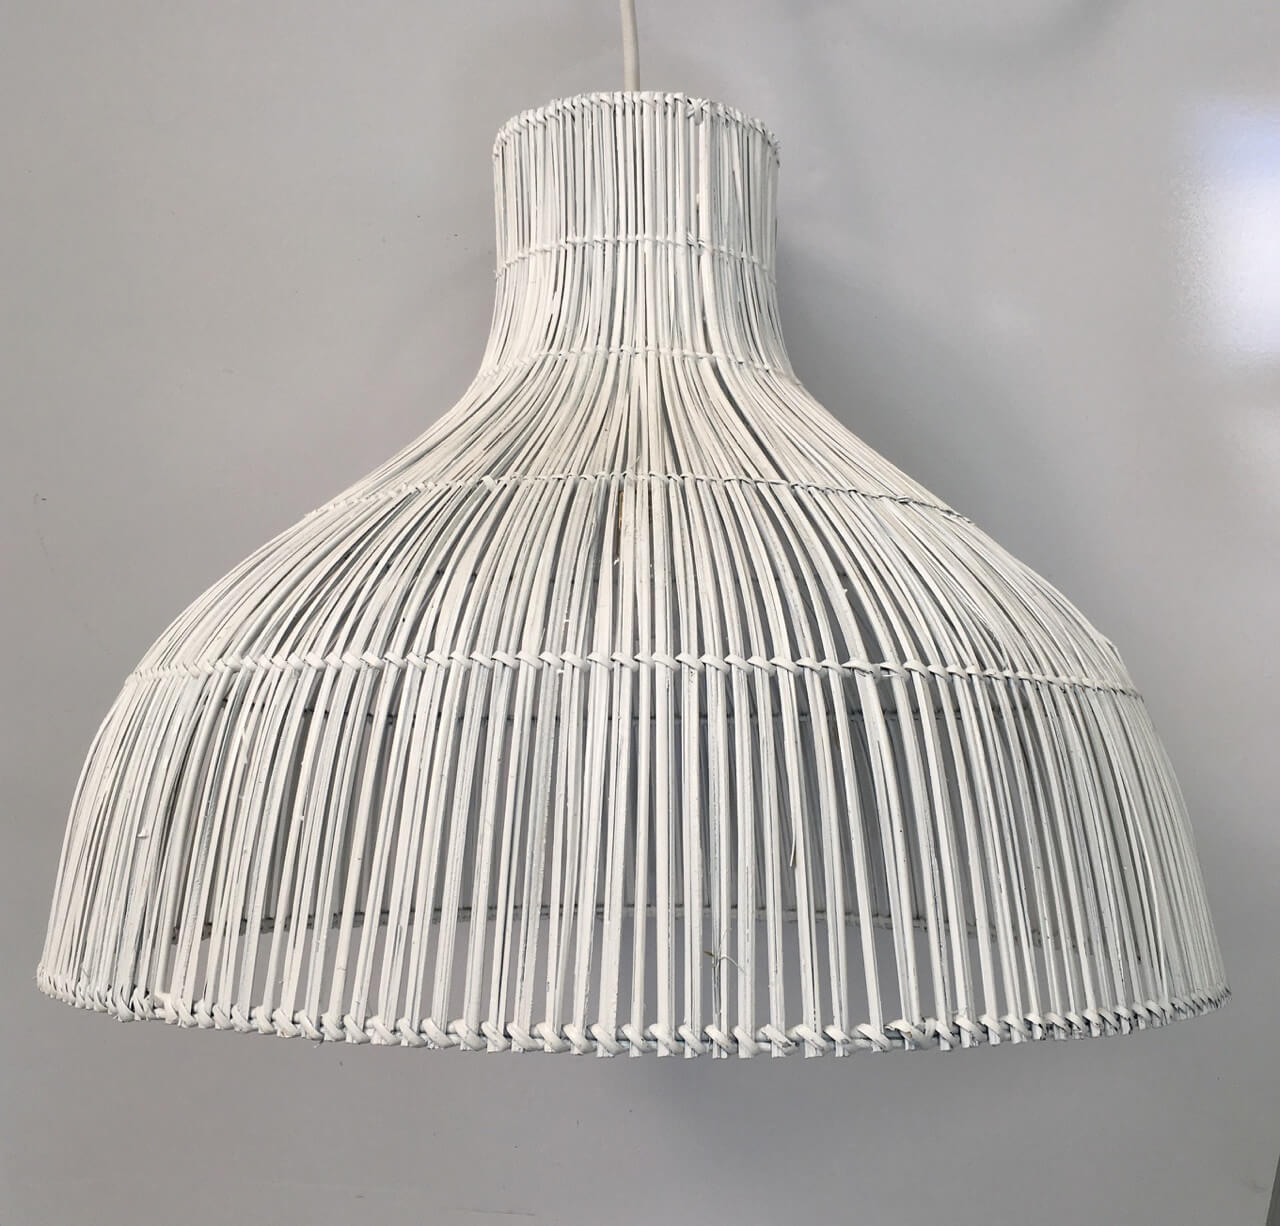 White Rattan Pendant Light